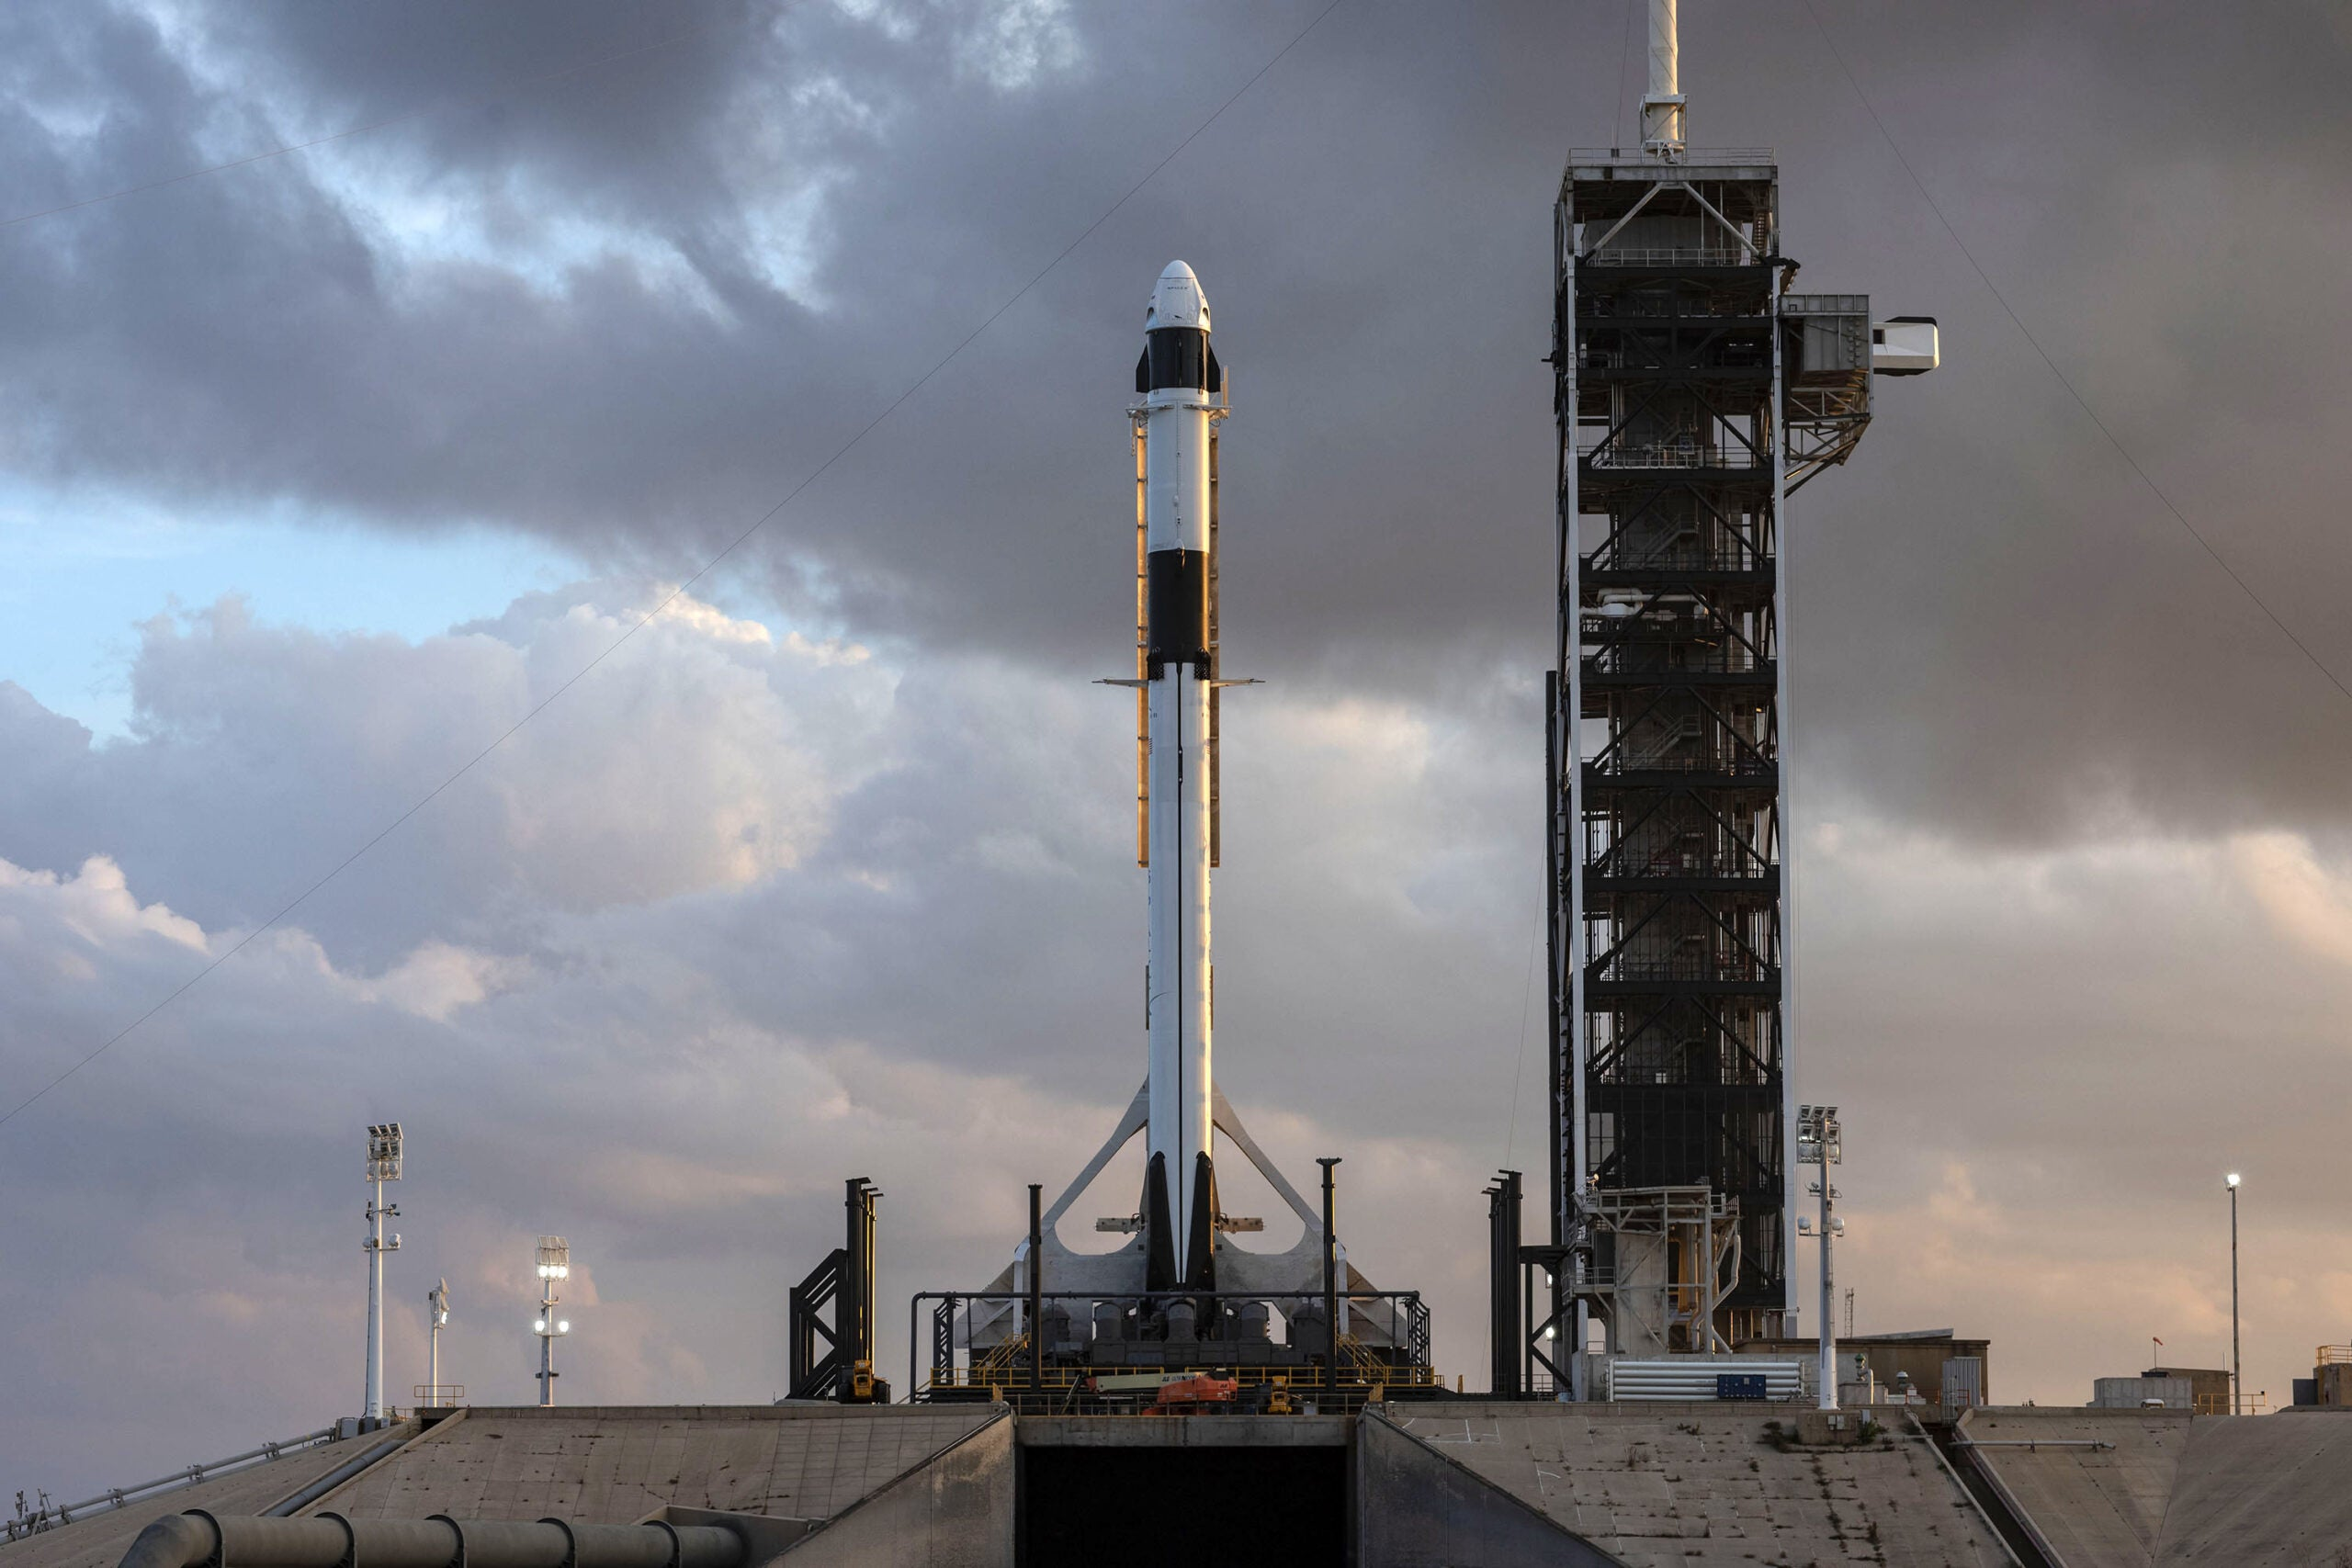 SpaceX's Crew Dragon launch is a pivotal moment for American spaceflight—here's how to watch